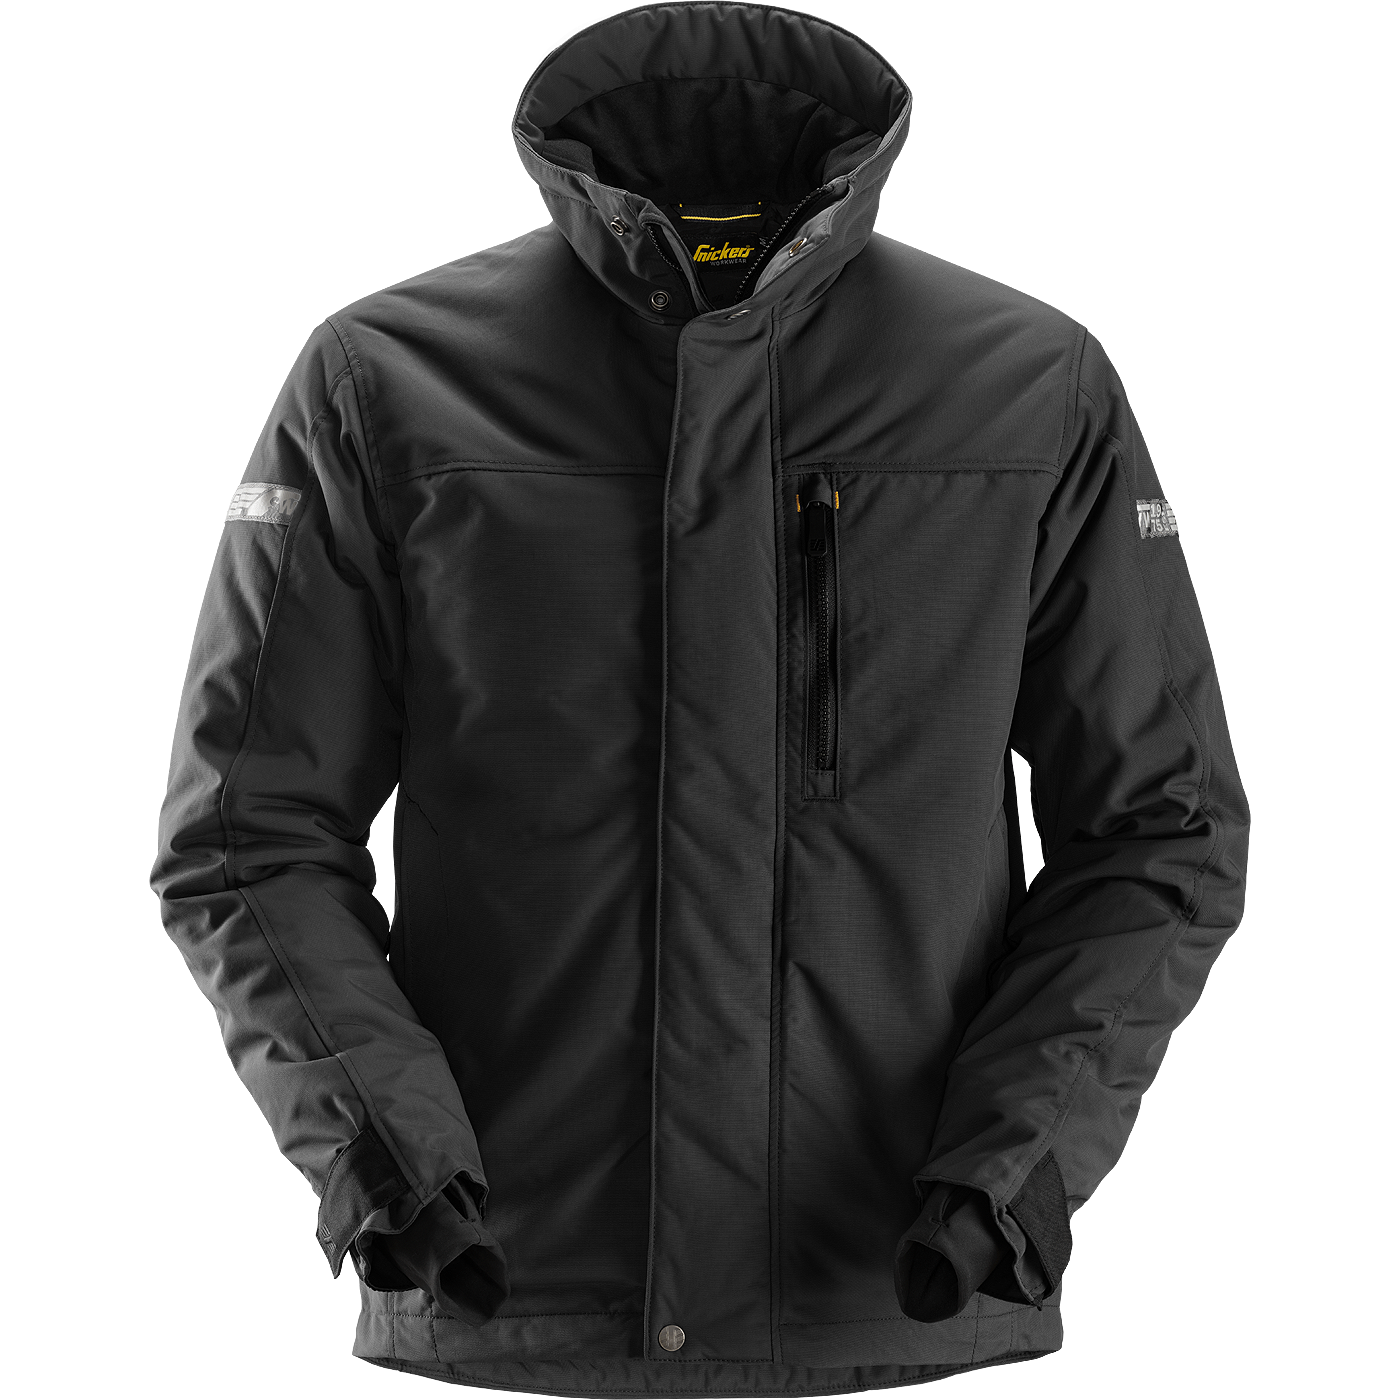 SNICKERS Workwear AllroundWork SoftShell